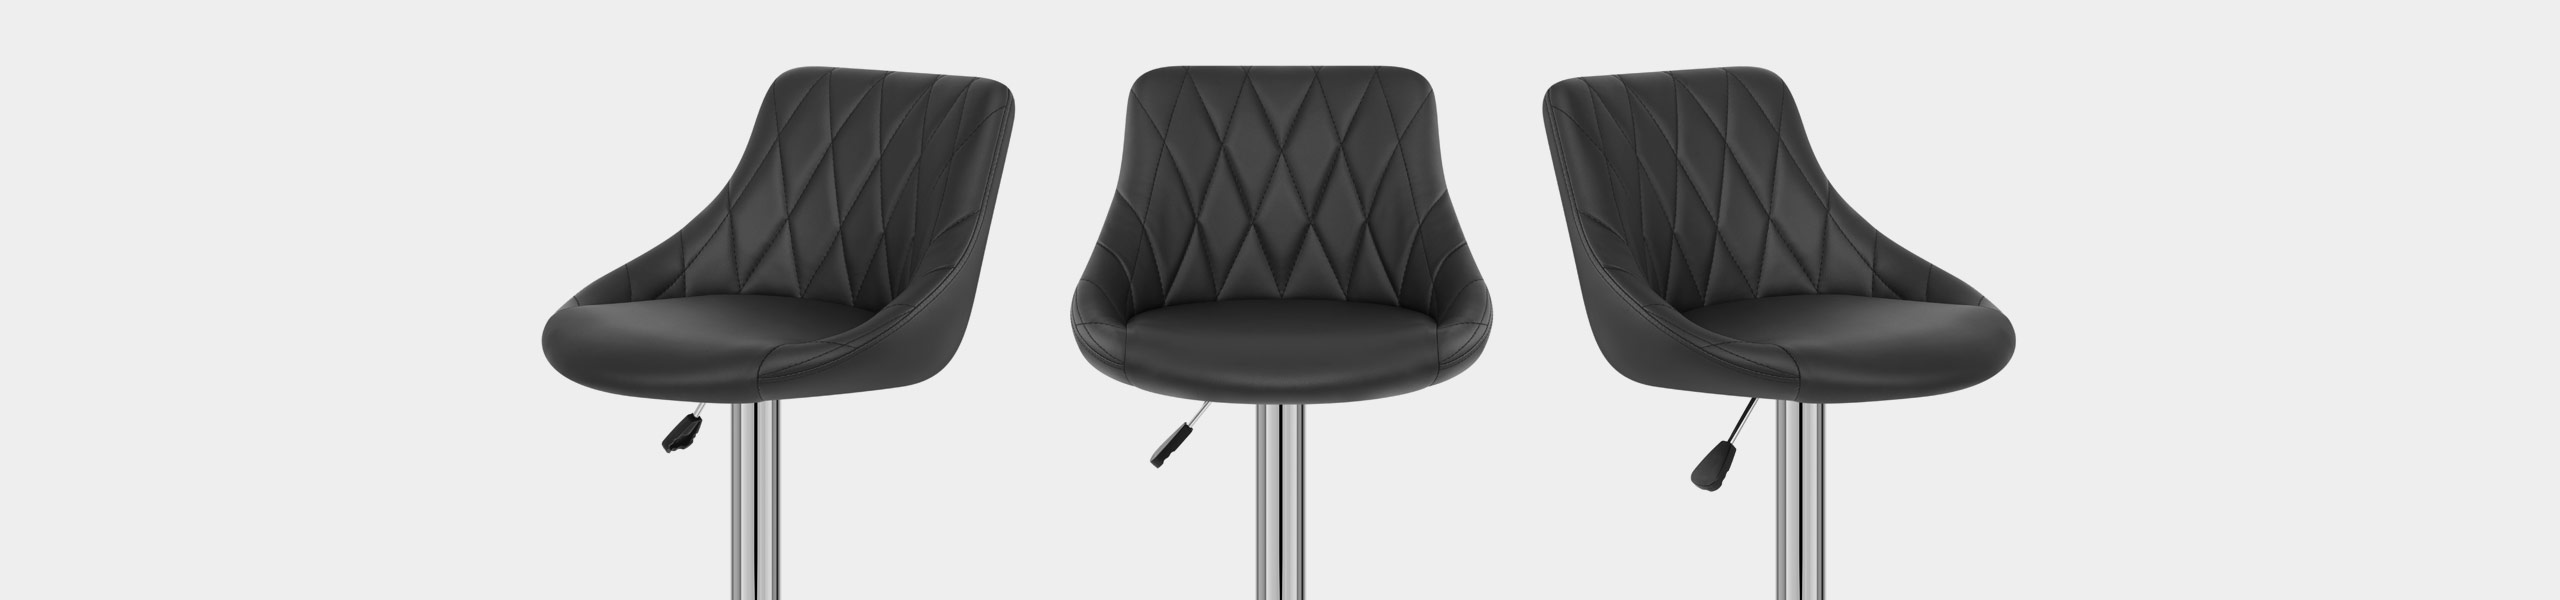 Stitch Bar Stool Black Video Banner